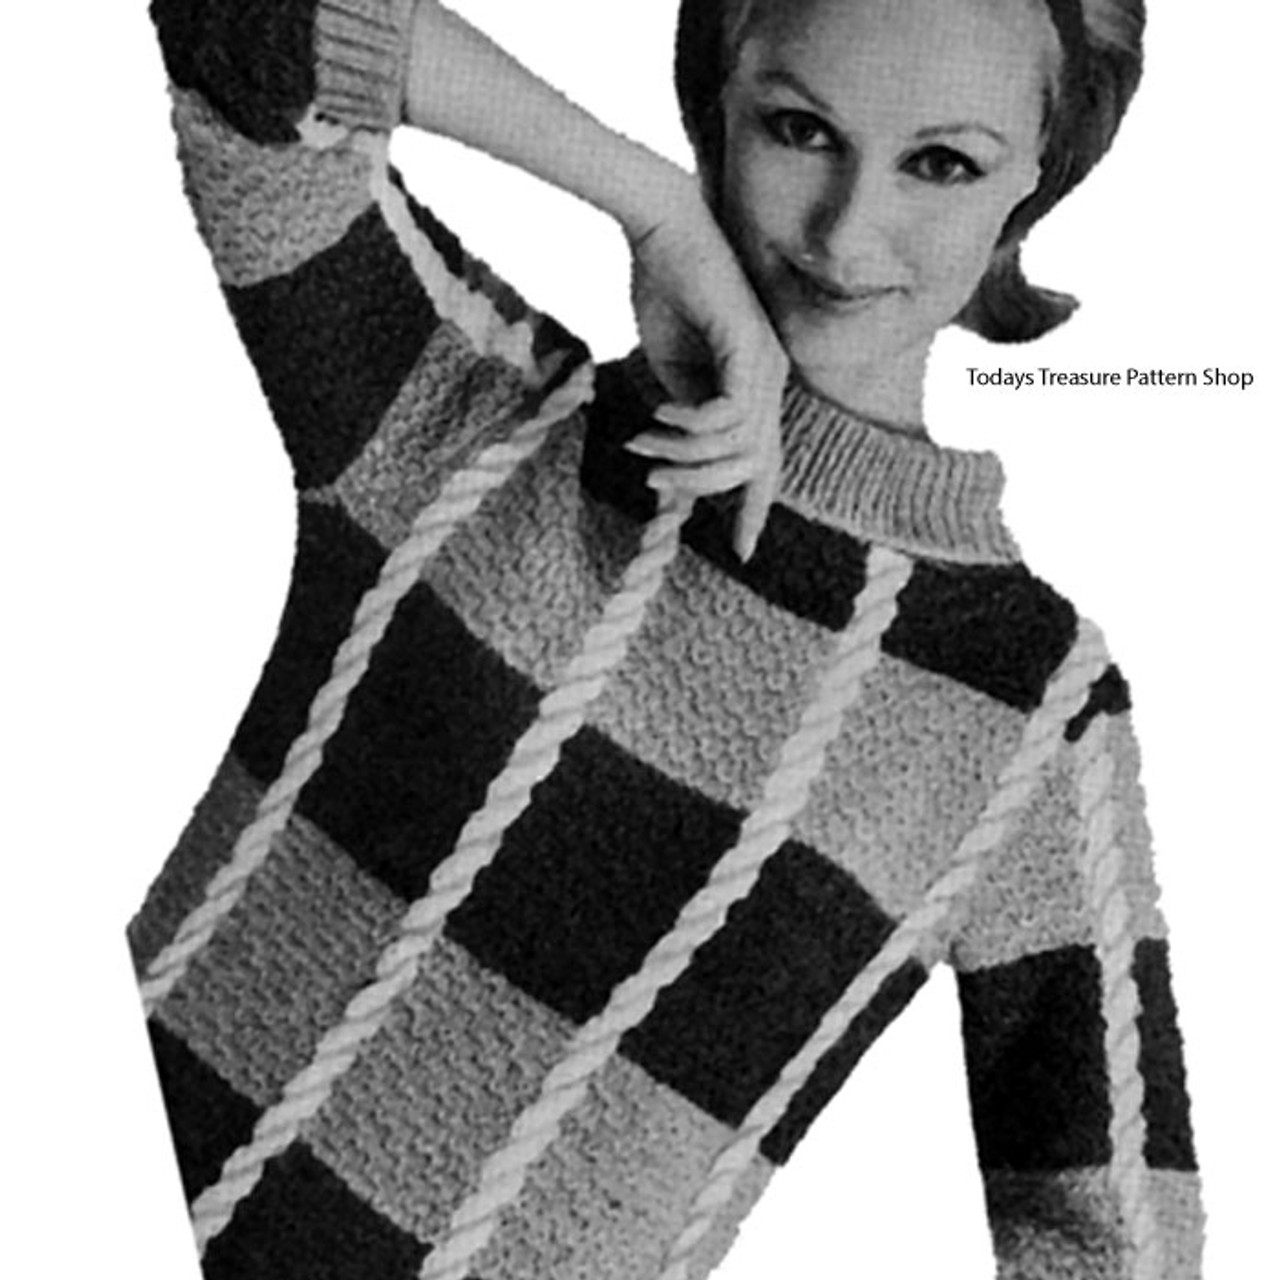 Jumbo Checked Knitted Pullover Pattern